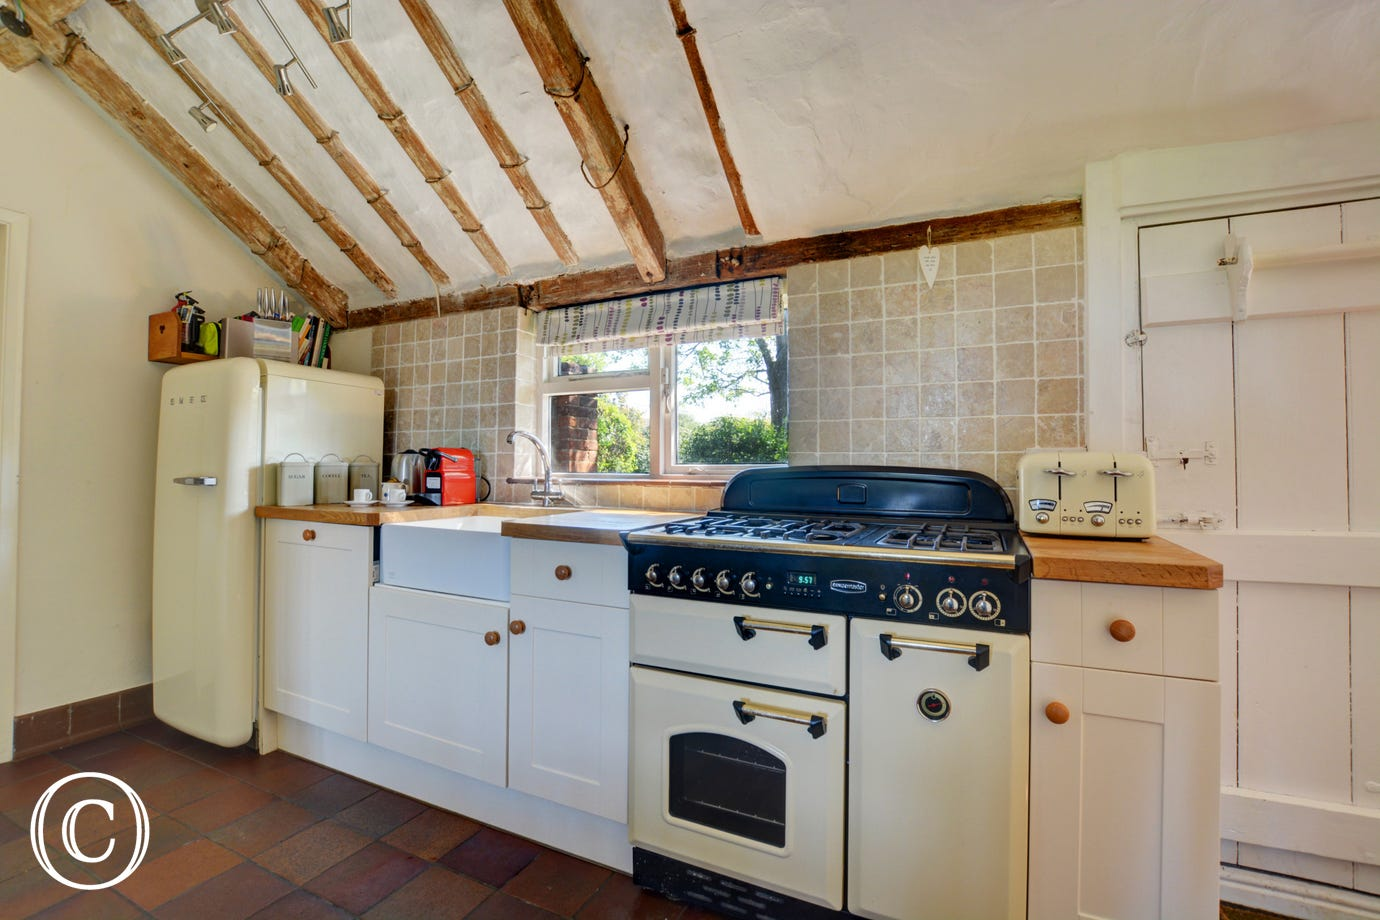 The Range cooker with a gas hob and electric oven is only one of the many appliances, with a butler sink and a small table and two high chairs, this kitchen is very well equipped and has an utility room